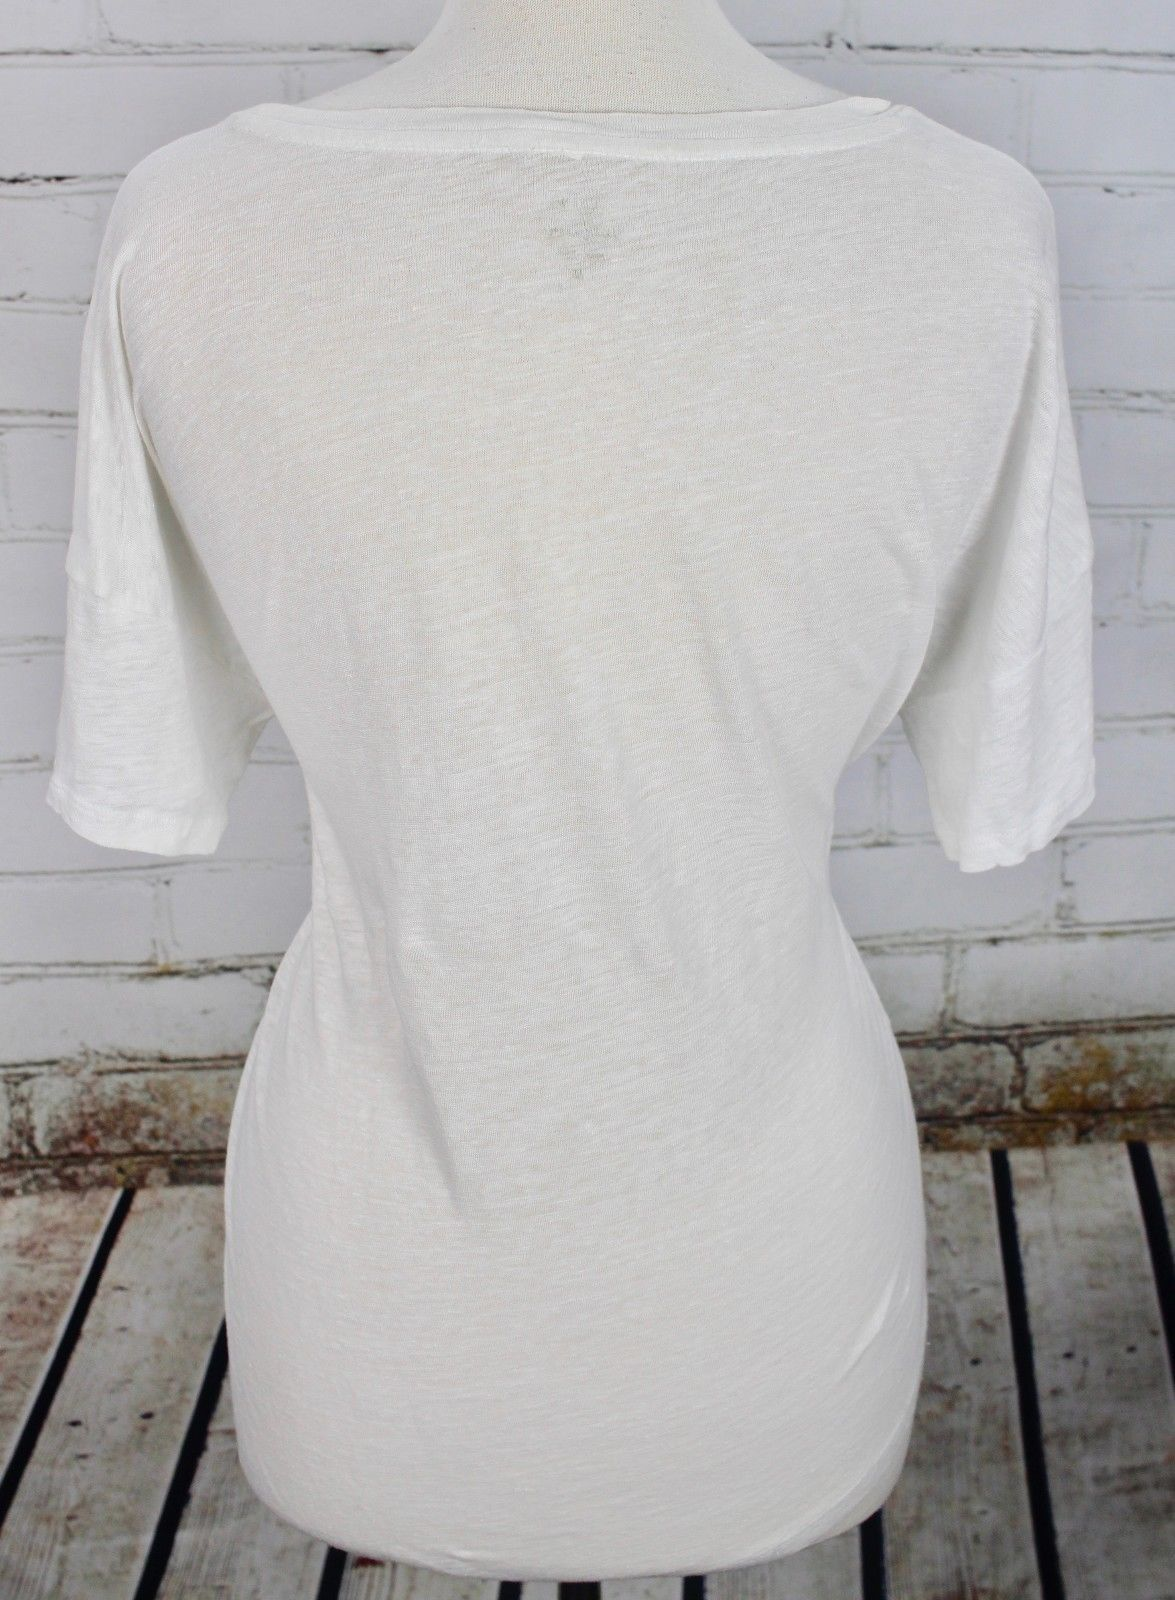 J Crew Boyfriend T-Shirt 100% Linen Tee Women's M White Short Sleeve Top Dolman image 4